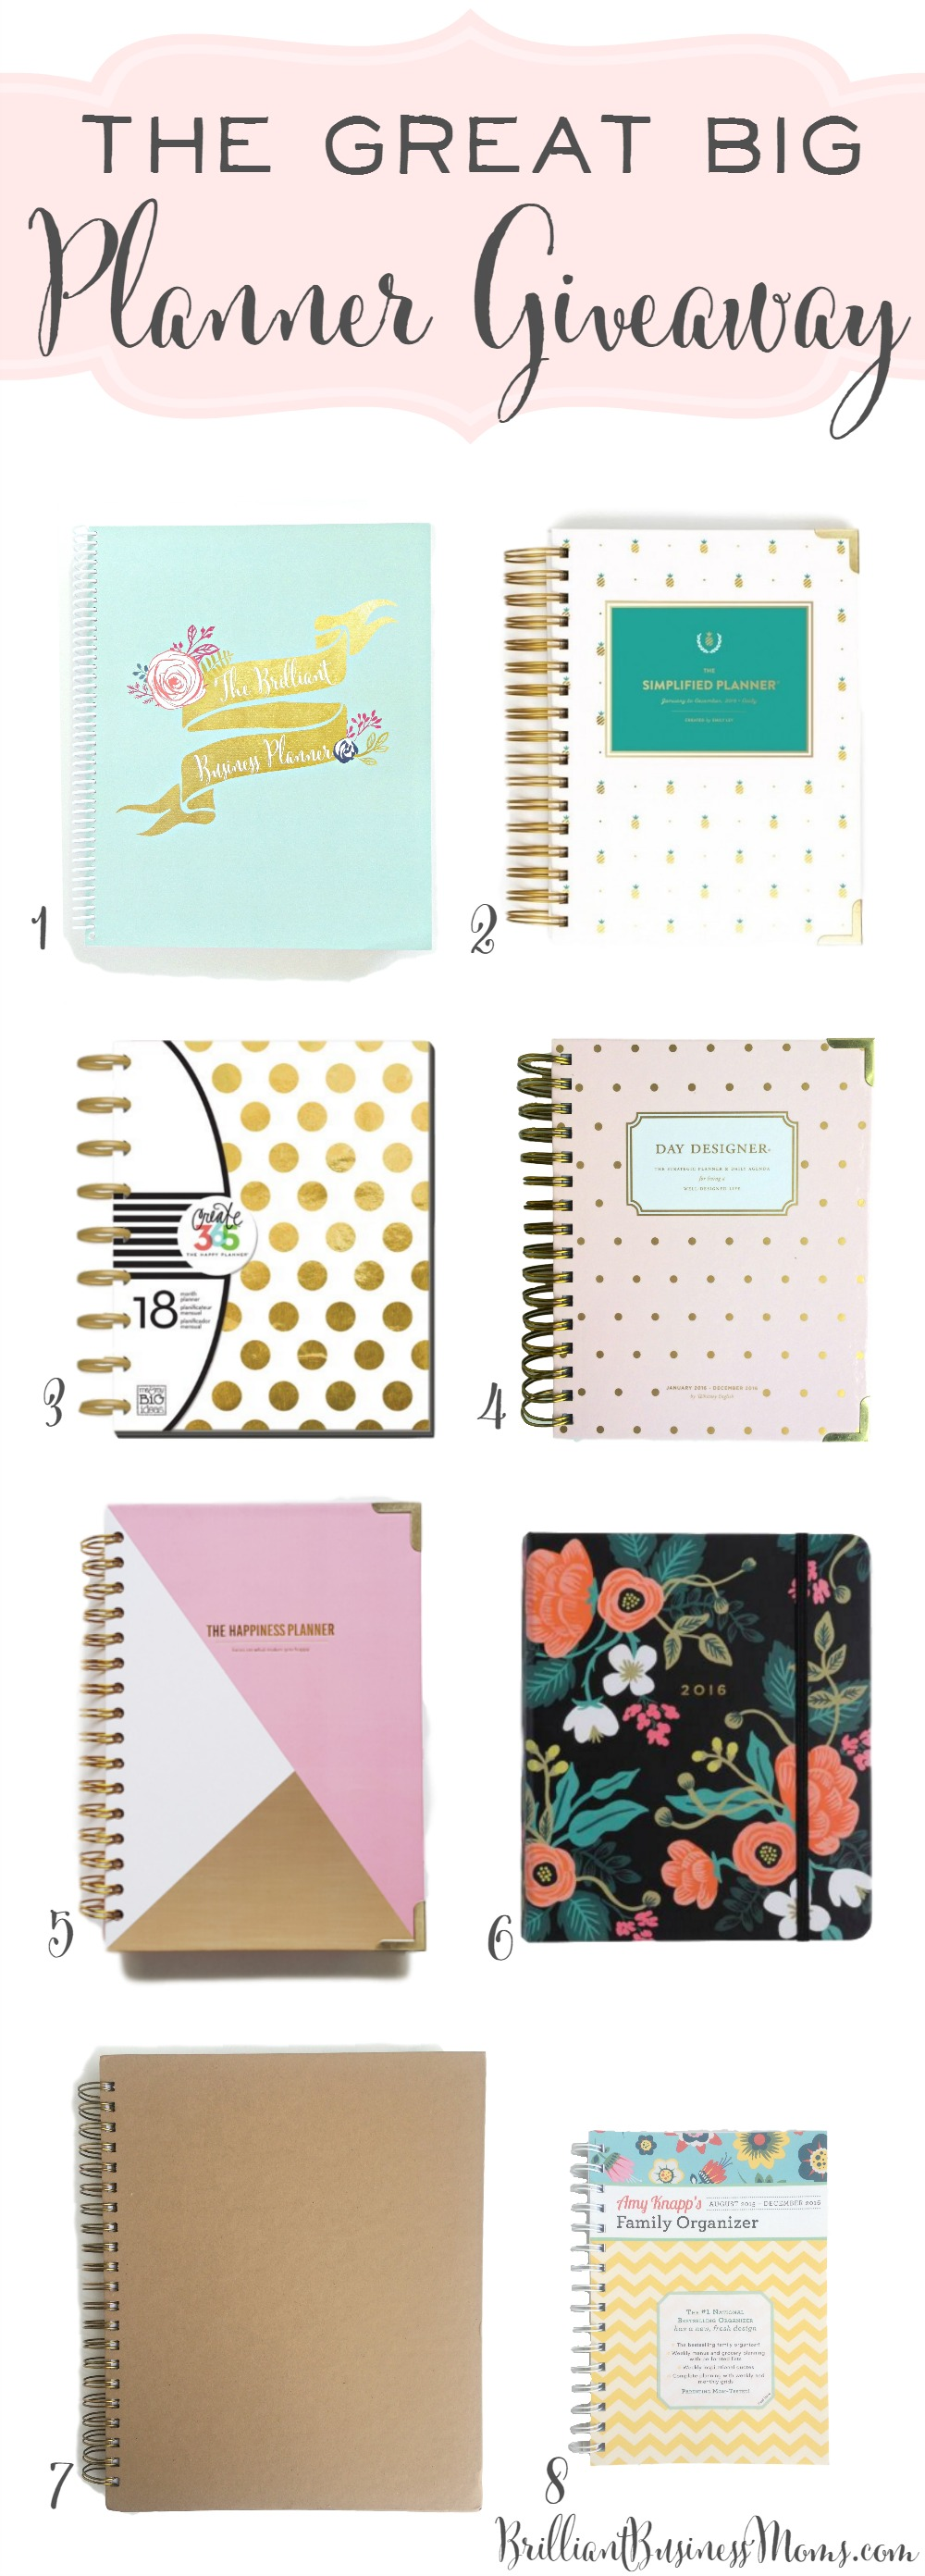 Can't even believe this! 8 amazing 2016 planners! Emily Ley Simplified Planner, Whitney English Day Designer Mini, The Happiness Planner, The Brilliant Business Planner, Rifle Paper Co. Planner, The Living Well Planner, and Amy Knapp's Planner. So many awesome planners to love.